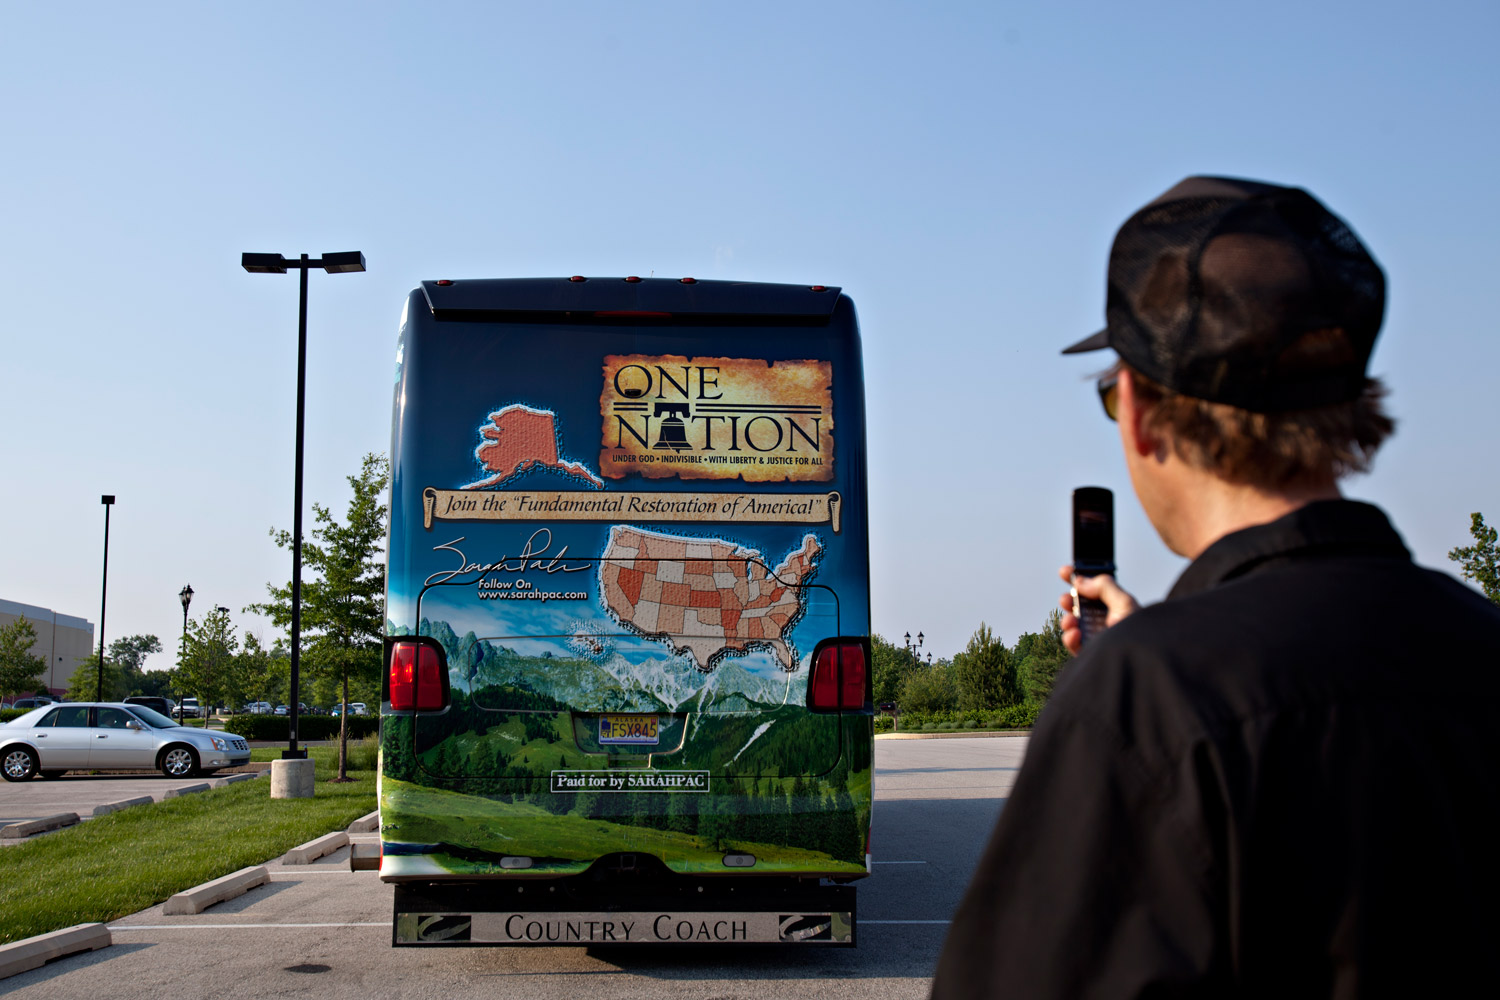 A man snaps a cell phone photograph of Sarah Palin's bus at a hotel in Gettysburg, PA, Monday, May 30, 2011.